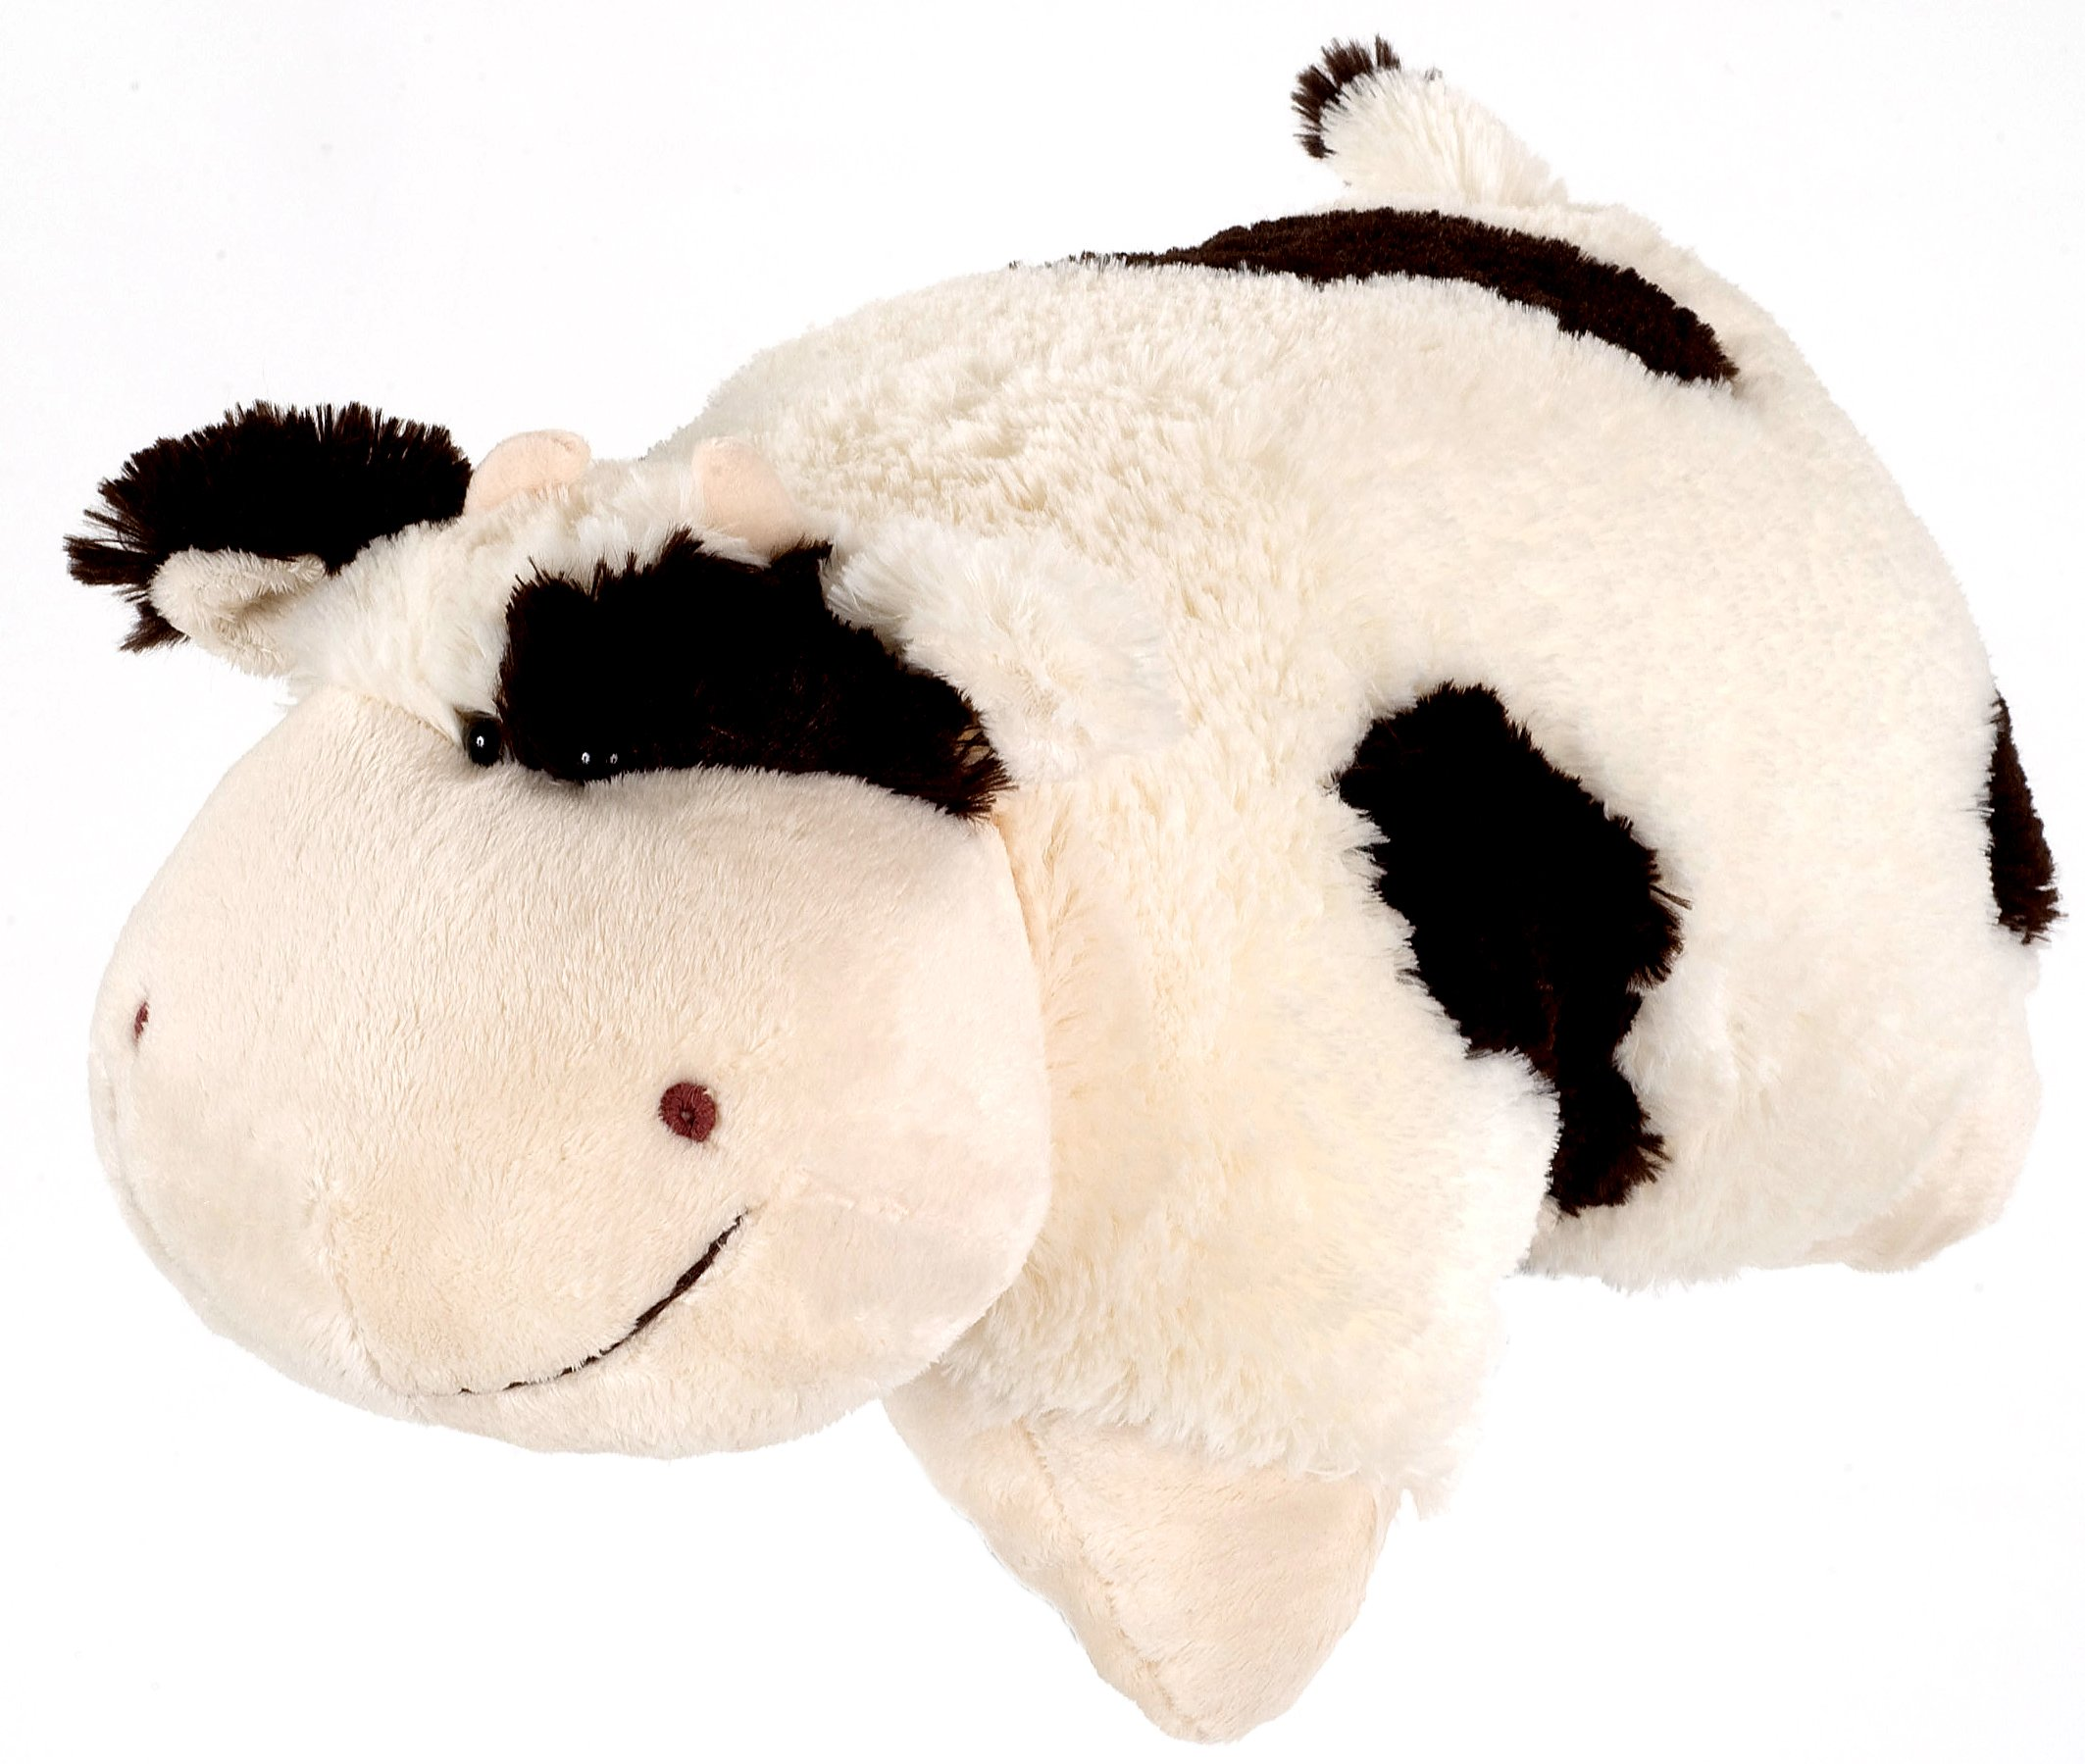 My Pillow Pets Cozy Cow 11'' Small by My Pillow Pets